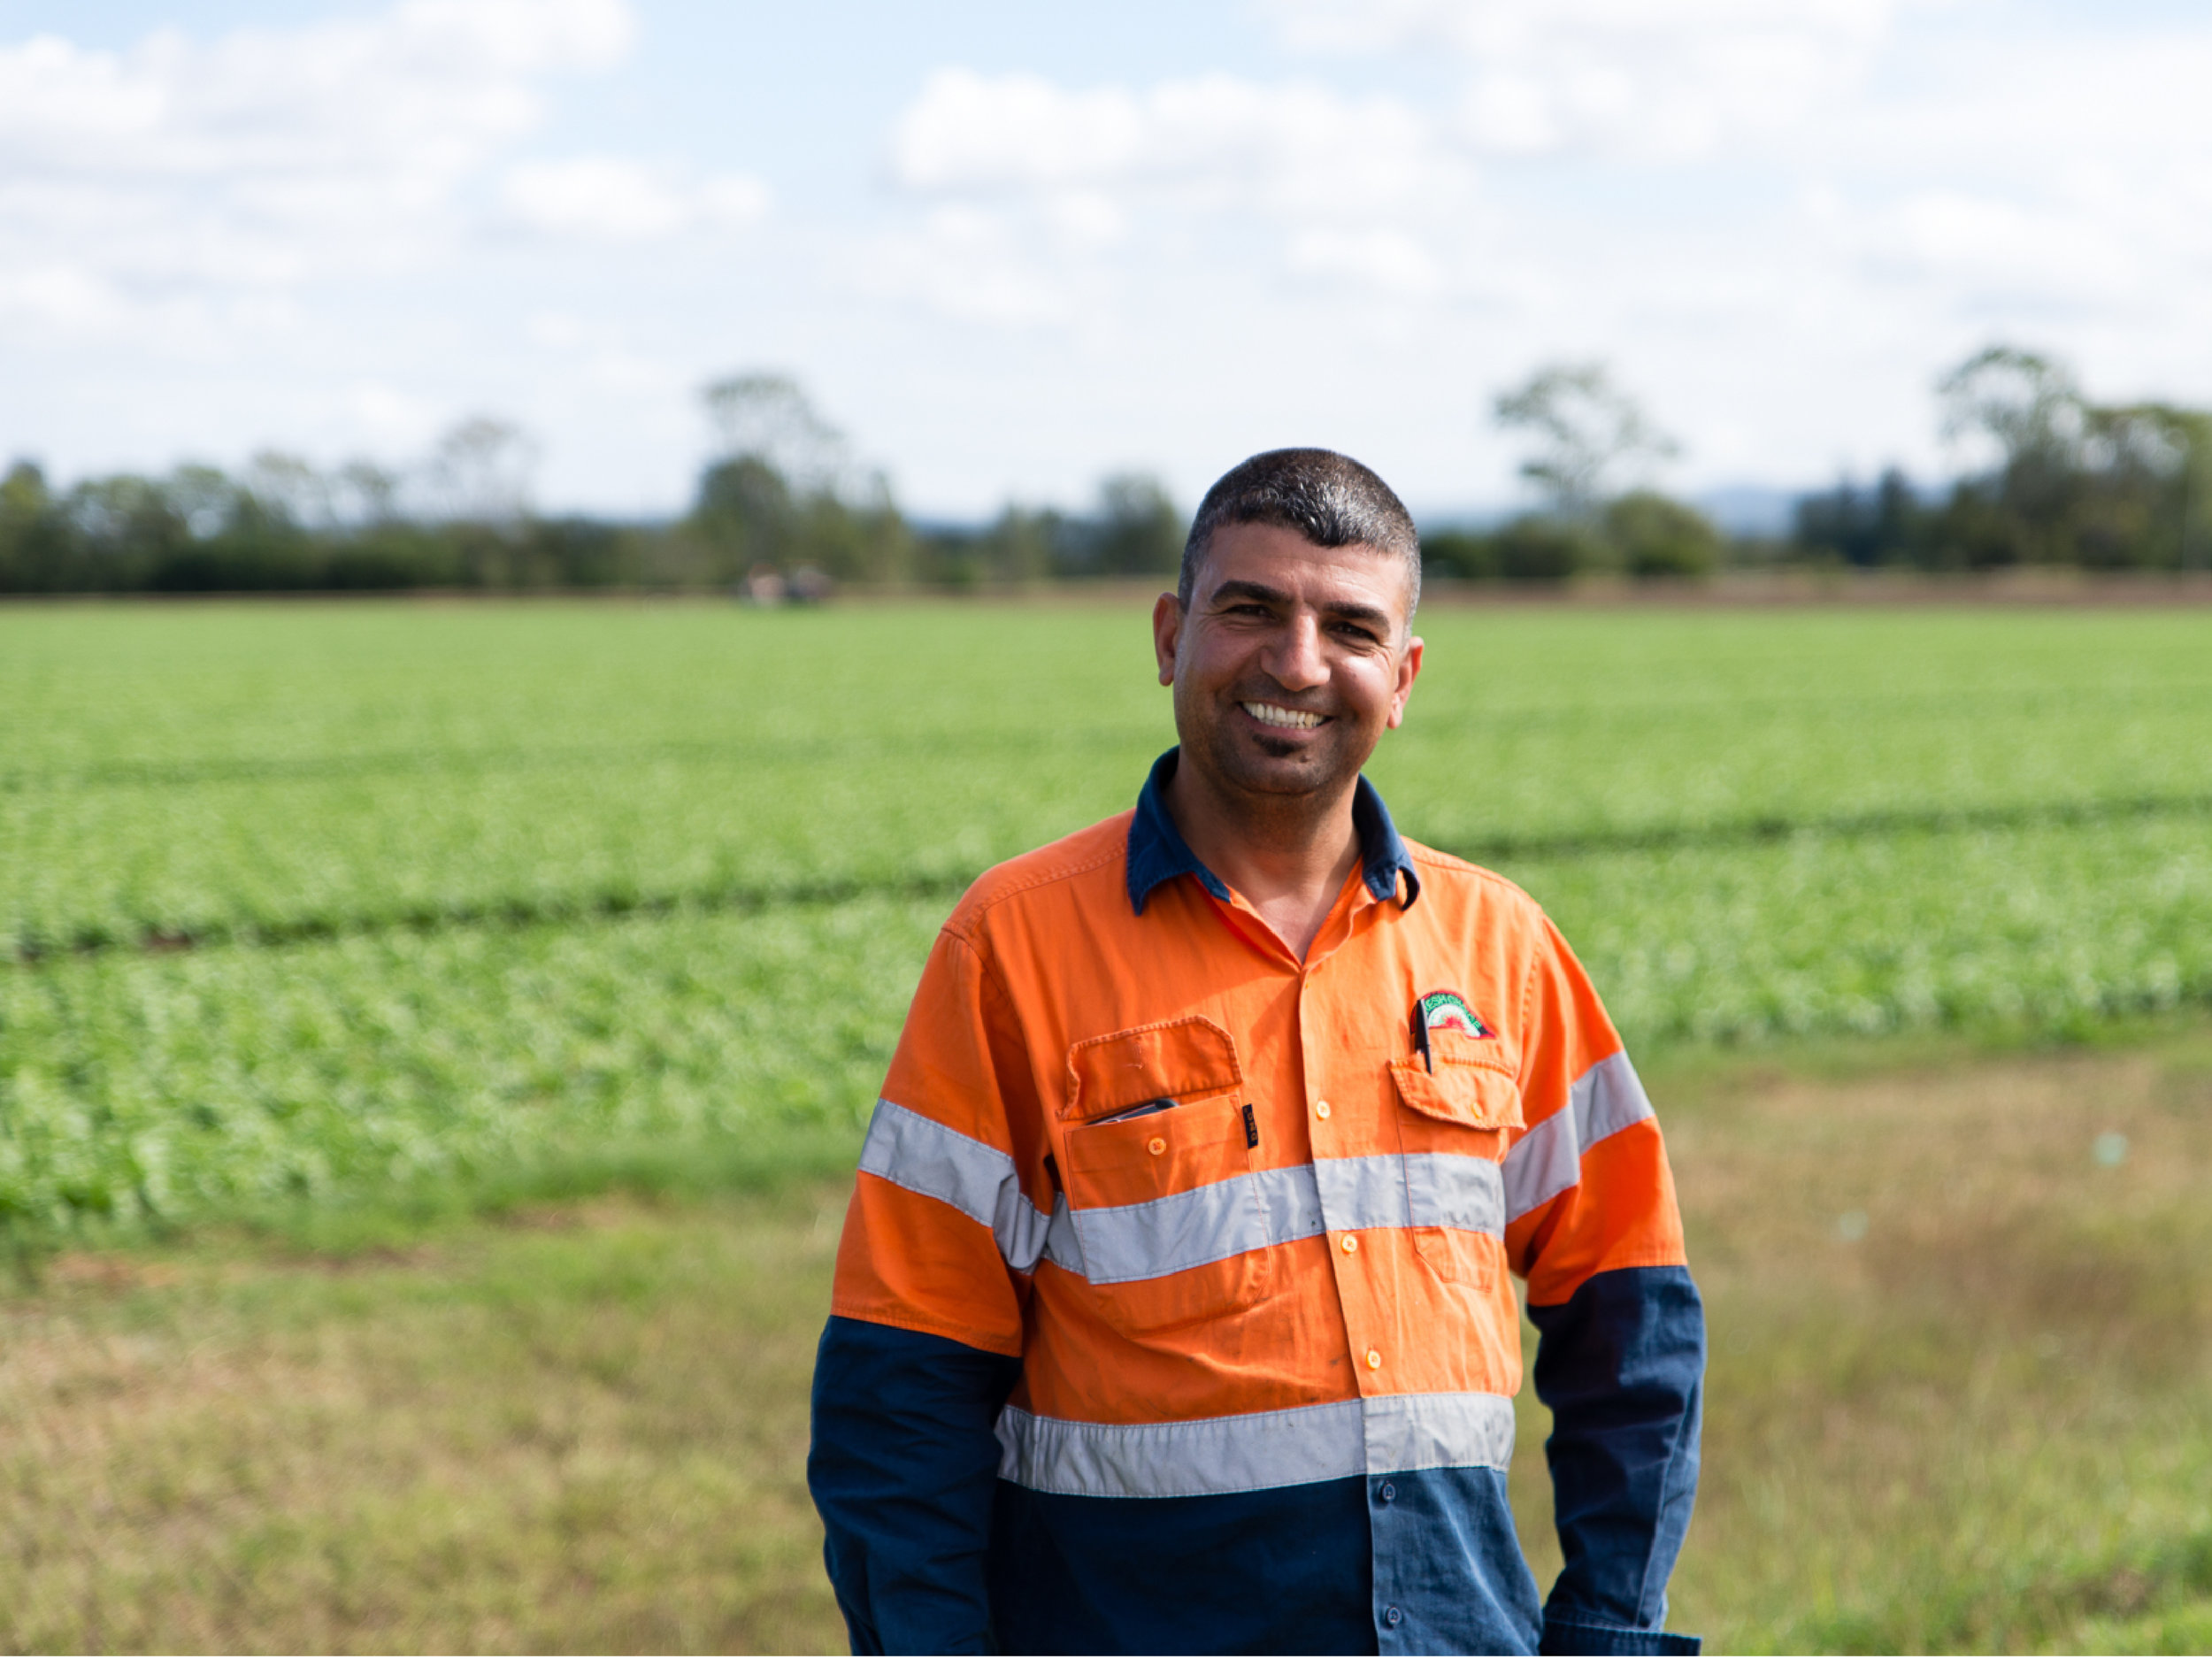 Adnan coordinates and manages all of our harvesting crews. We often have up to 3 harvesters running at one time cutting broccoli and iceberg lettuce. Adnan makes sure our produce is looking and tasting its best before it gets to you in the supermarket.